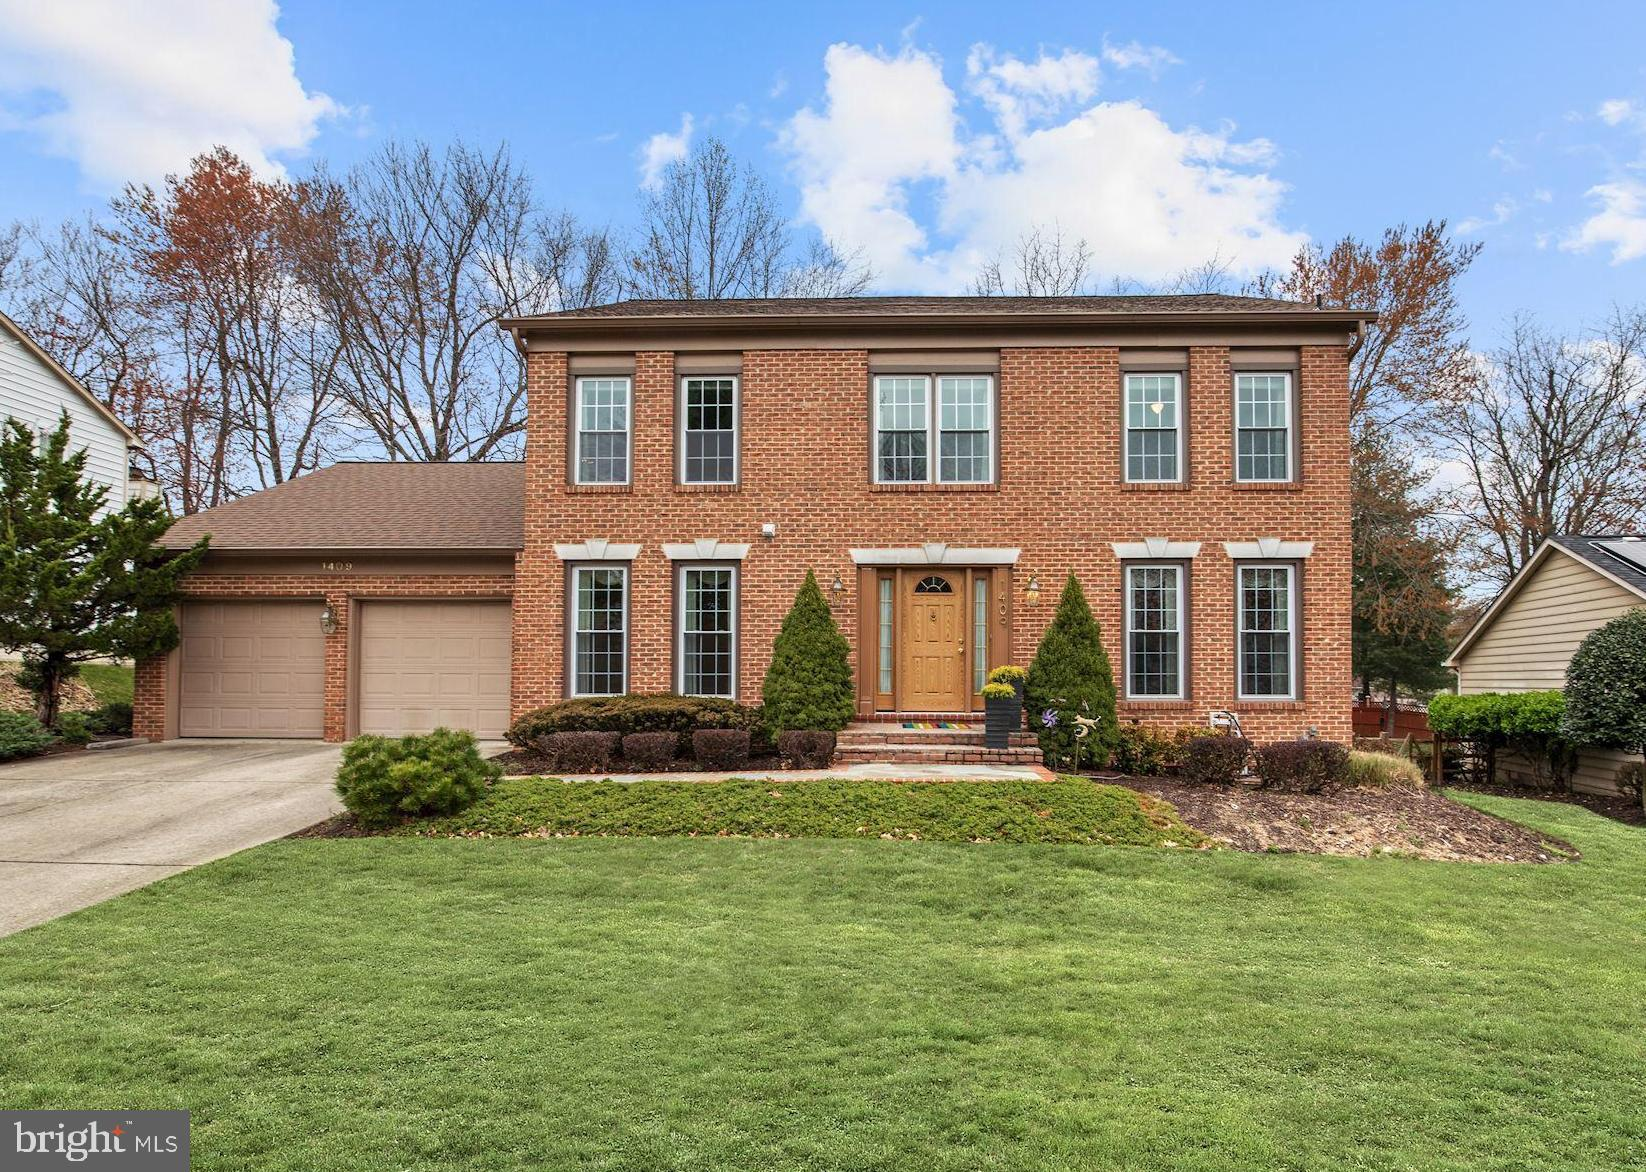 1409 SQUAW HILL LANE, SILVER SPRING, MD 20906